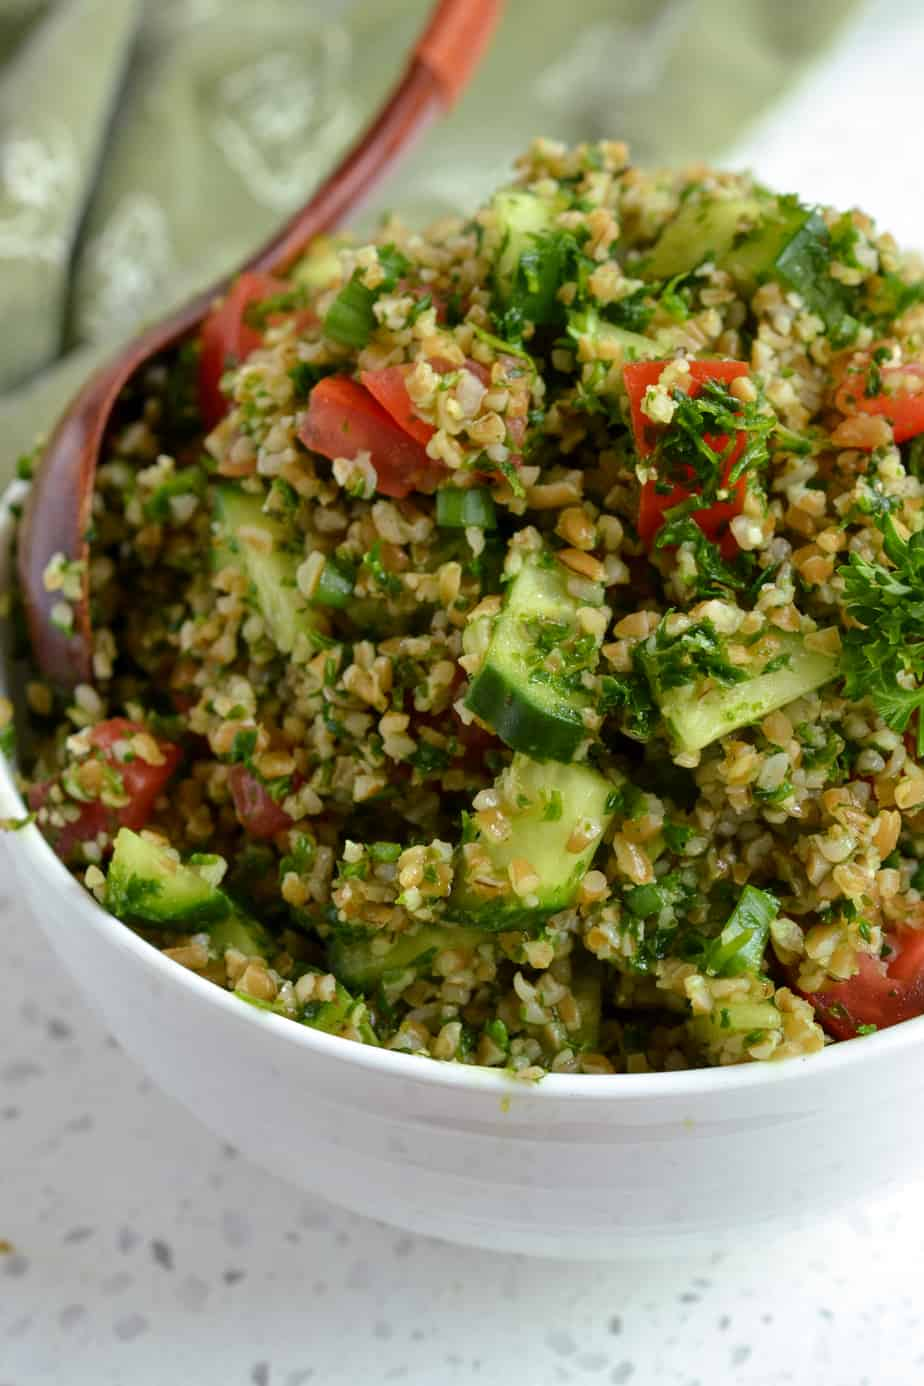 A salad with bulgur wheat, cucumbers, tomatoes, scallions, parsley and mint all drizzled with lemon and olive oil.